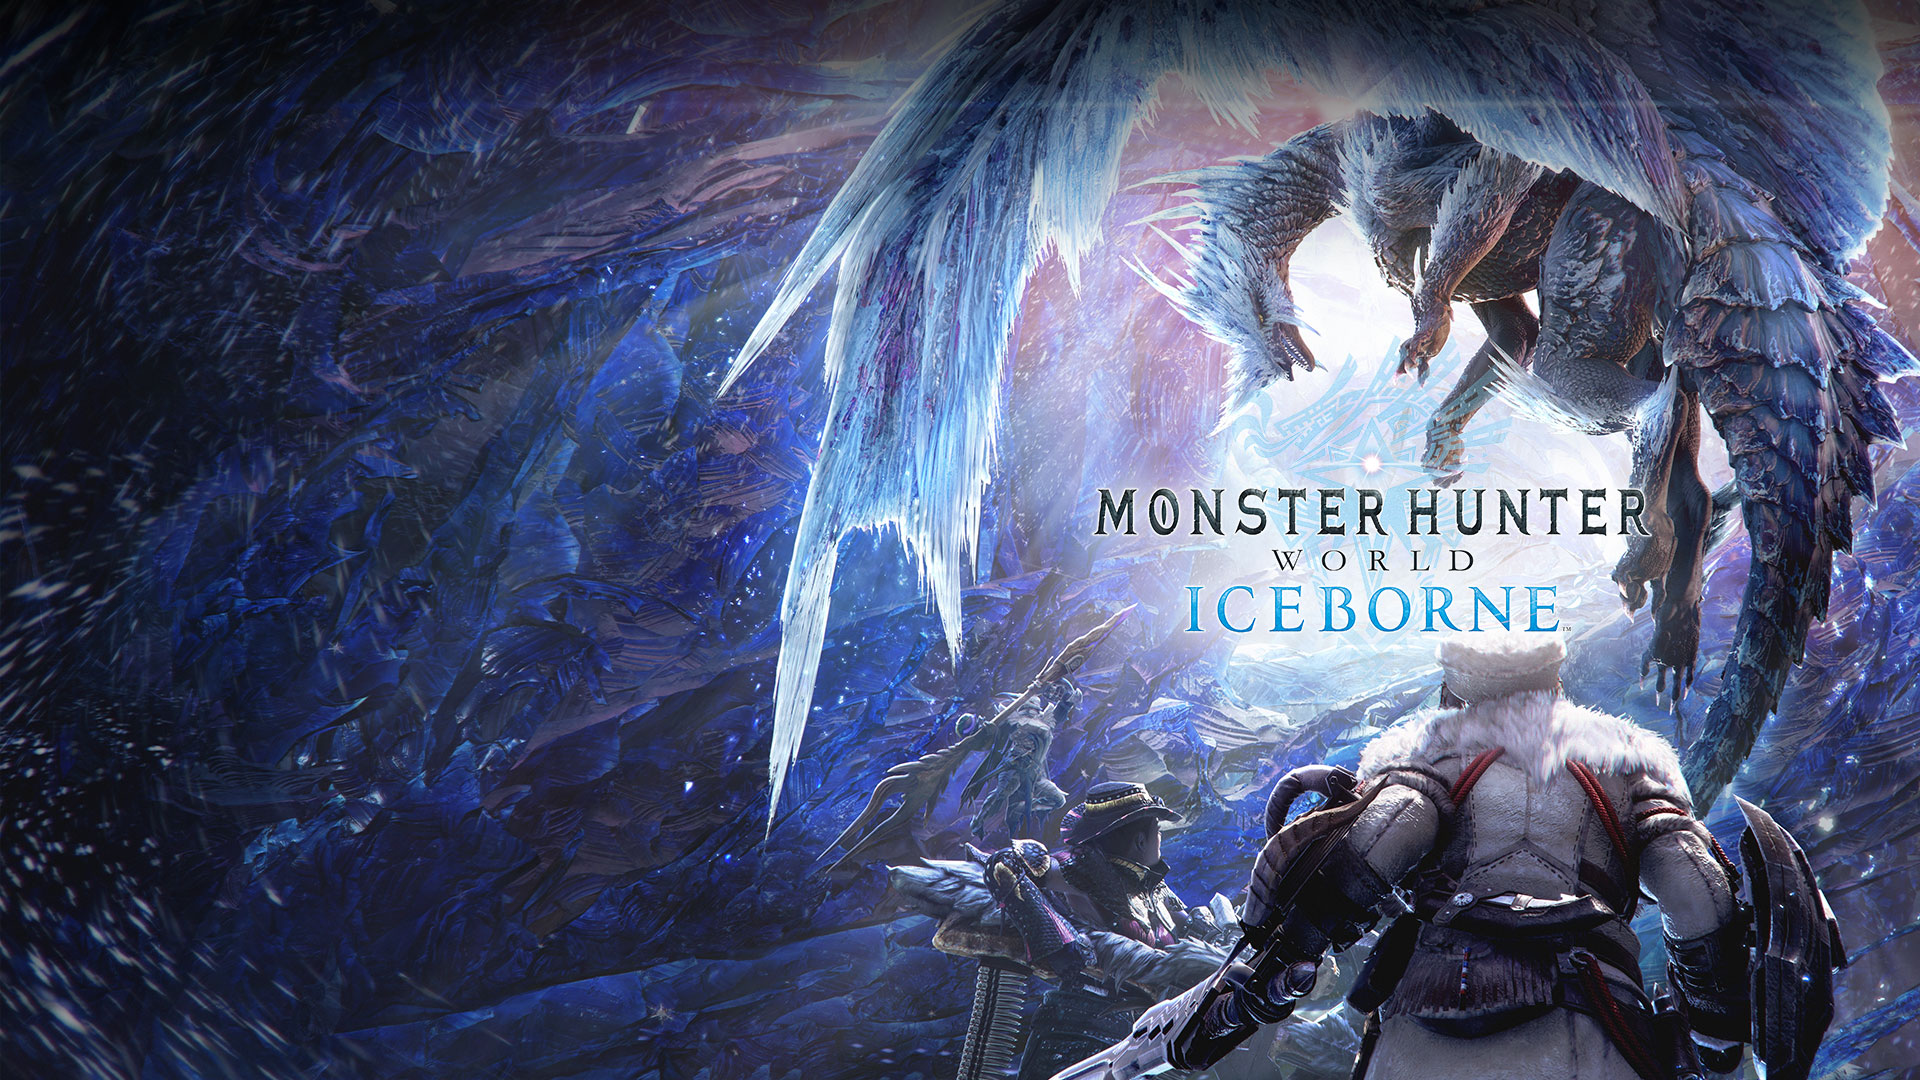 Monster Hunter World Iceborne, Monster hunters face an ice dragon surrounded by large crystals